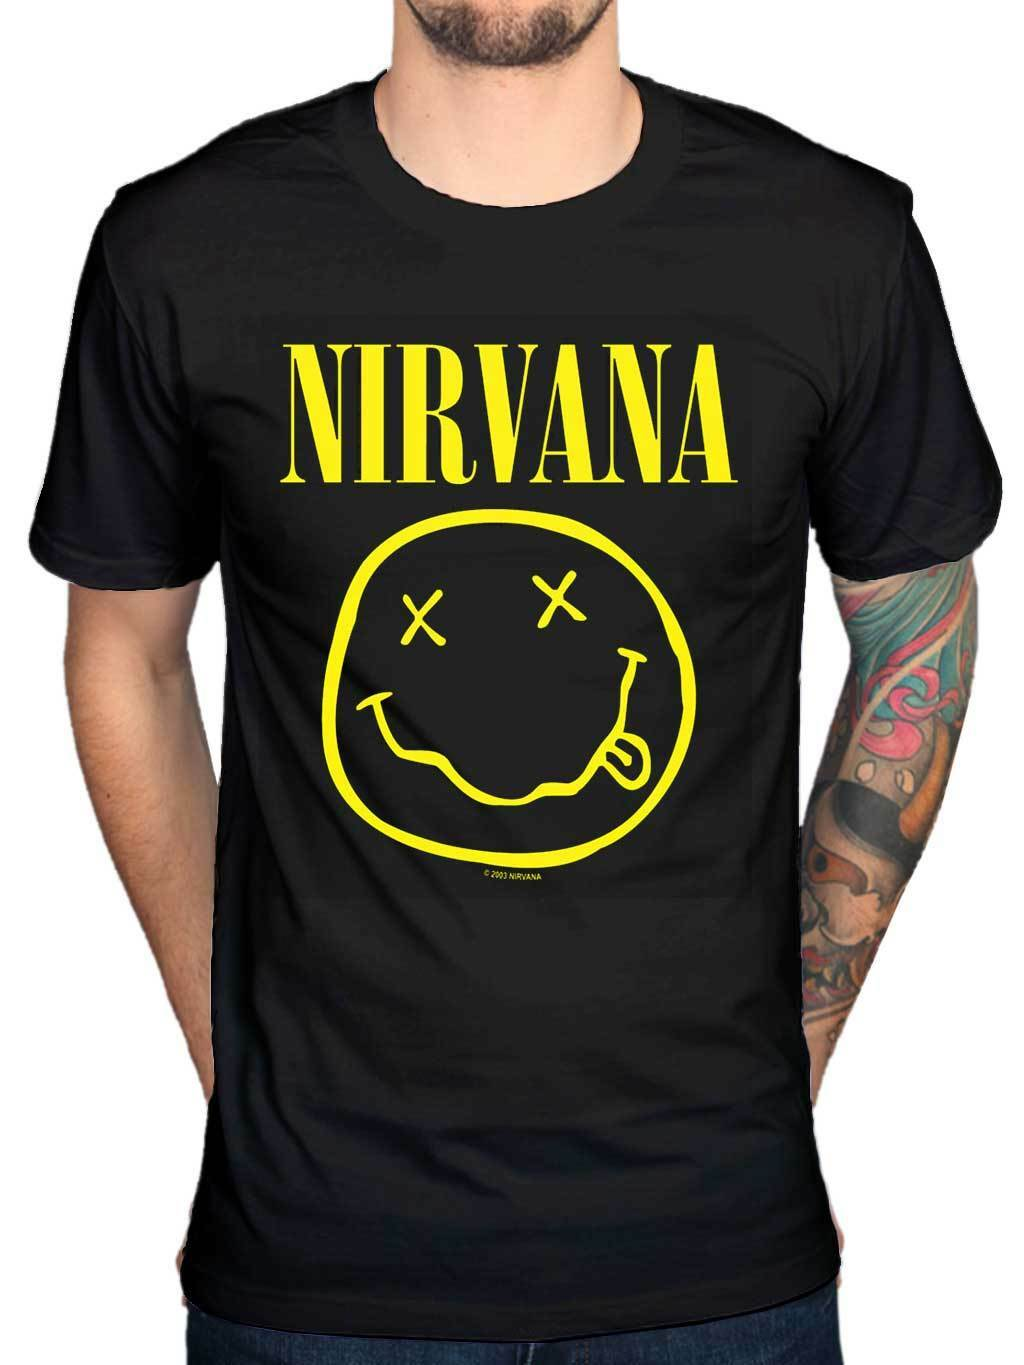 Nirvana smiley face shirt